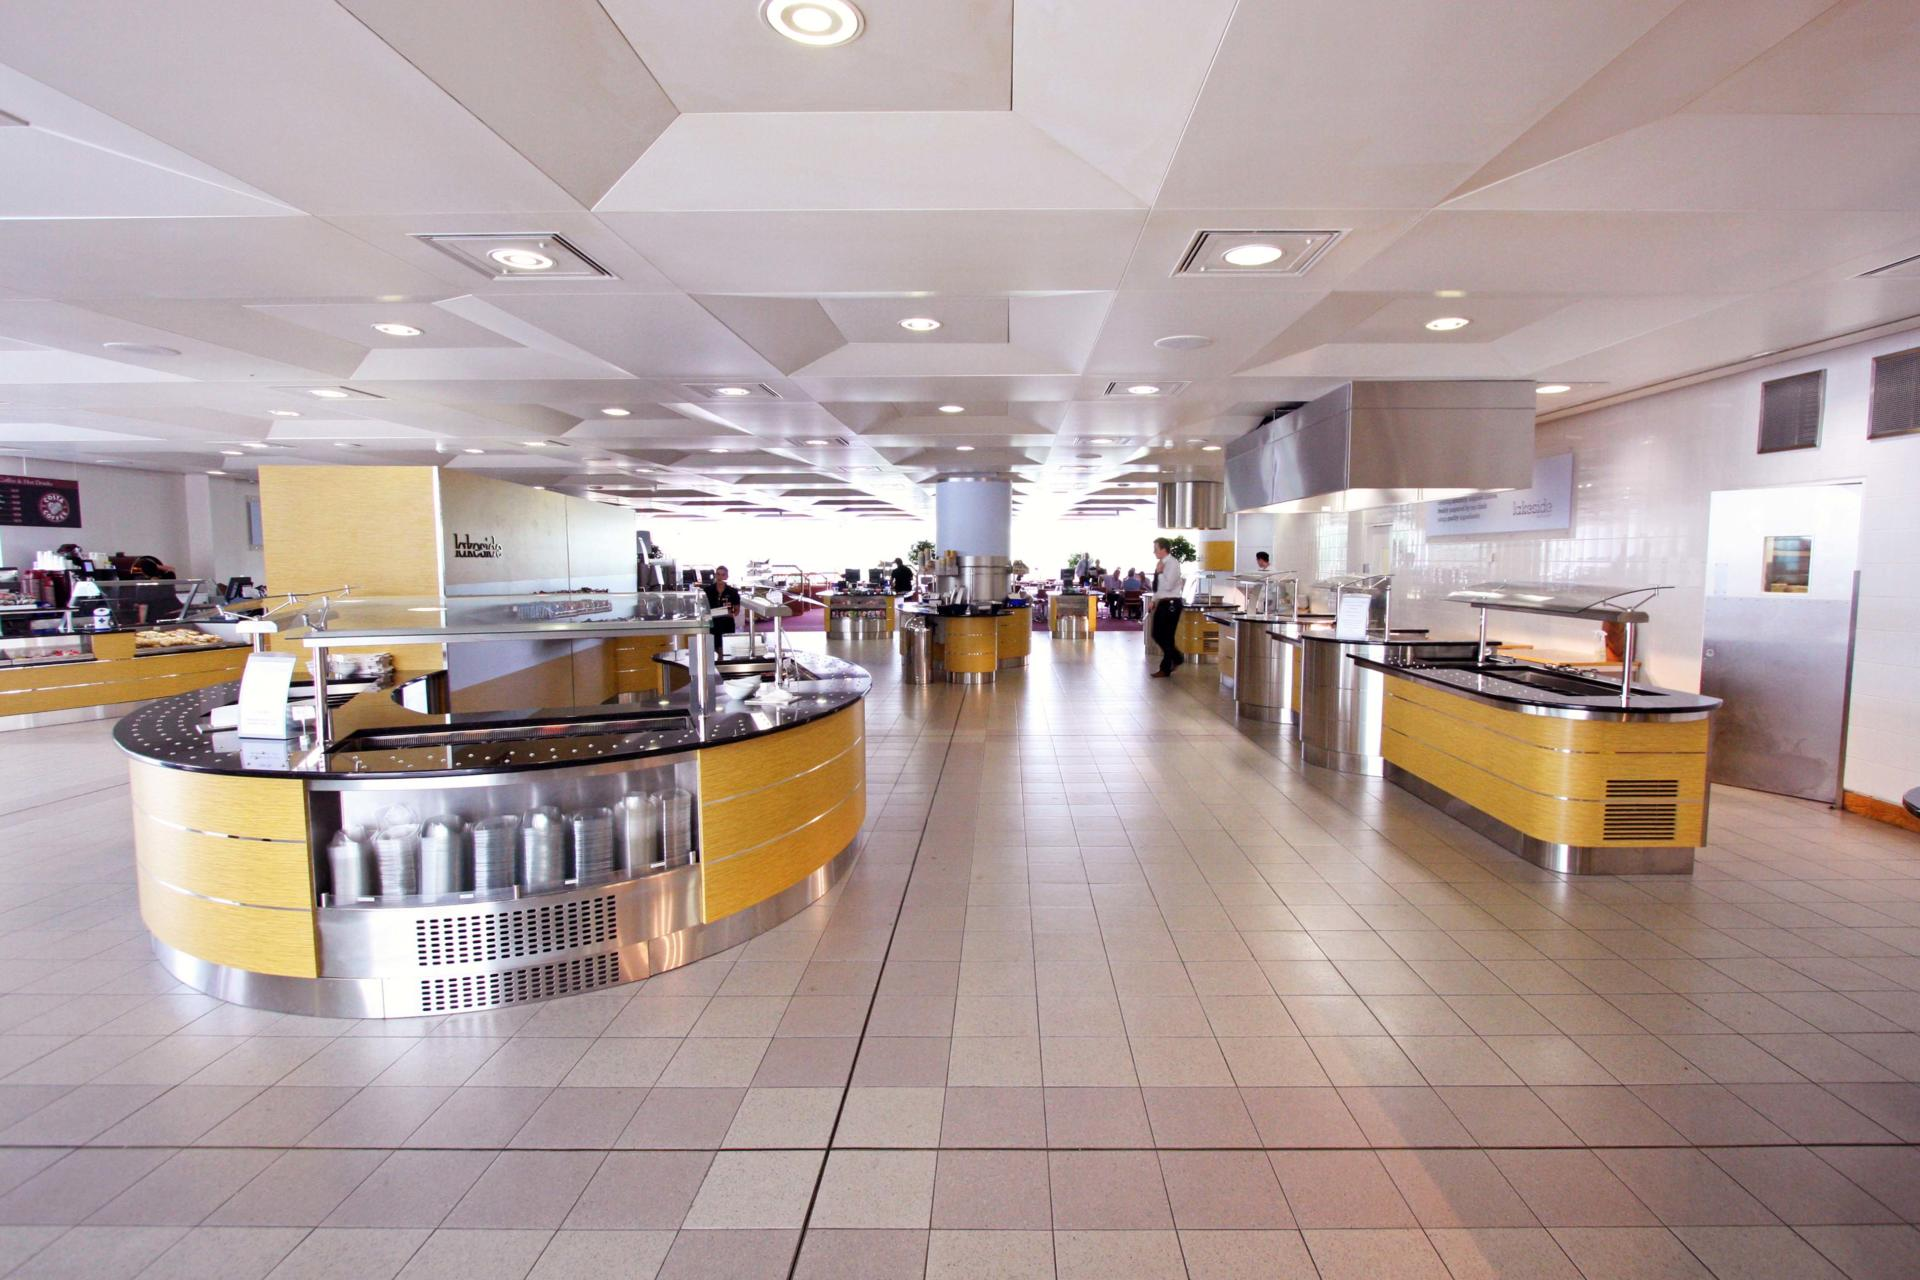 nationwide_swindon_staff restaurant_servery_spacecatering